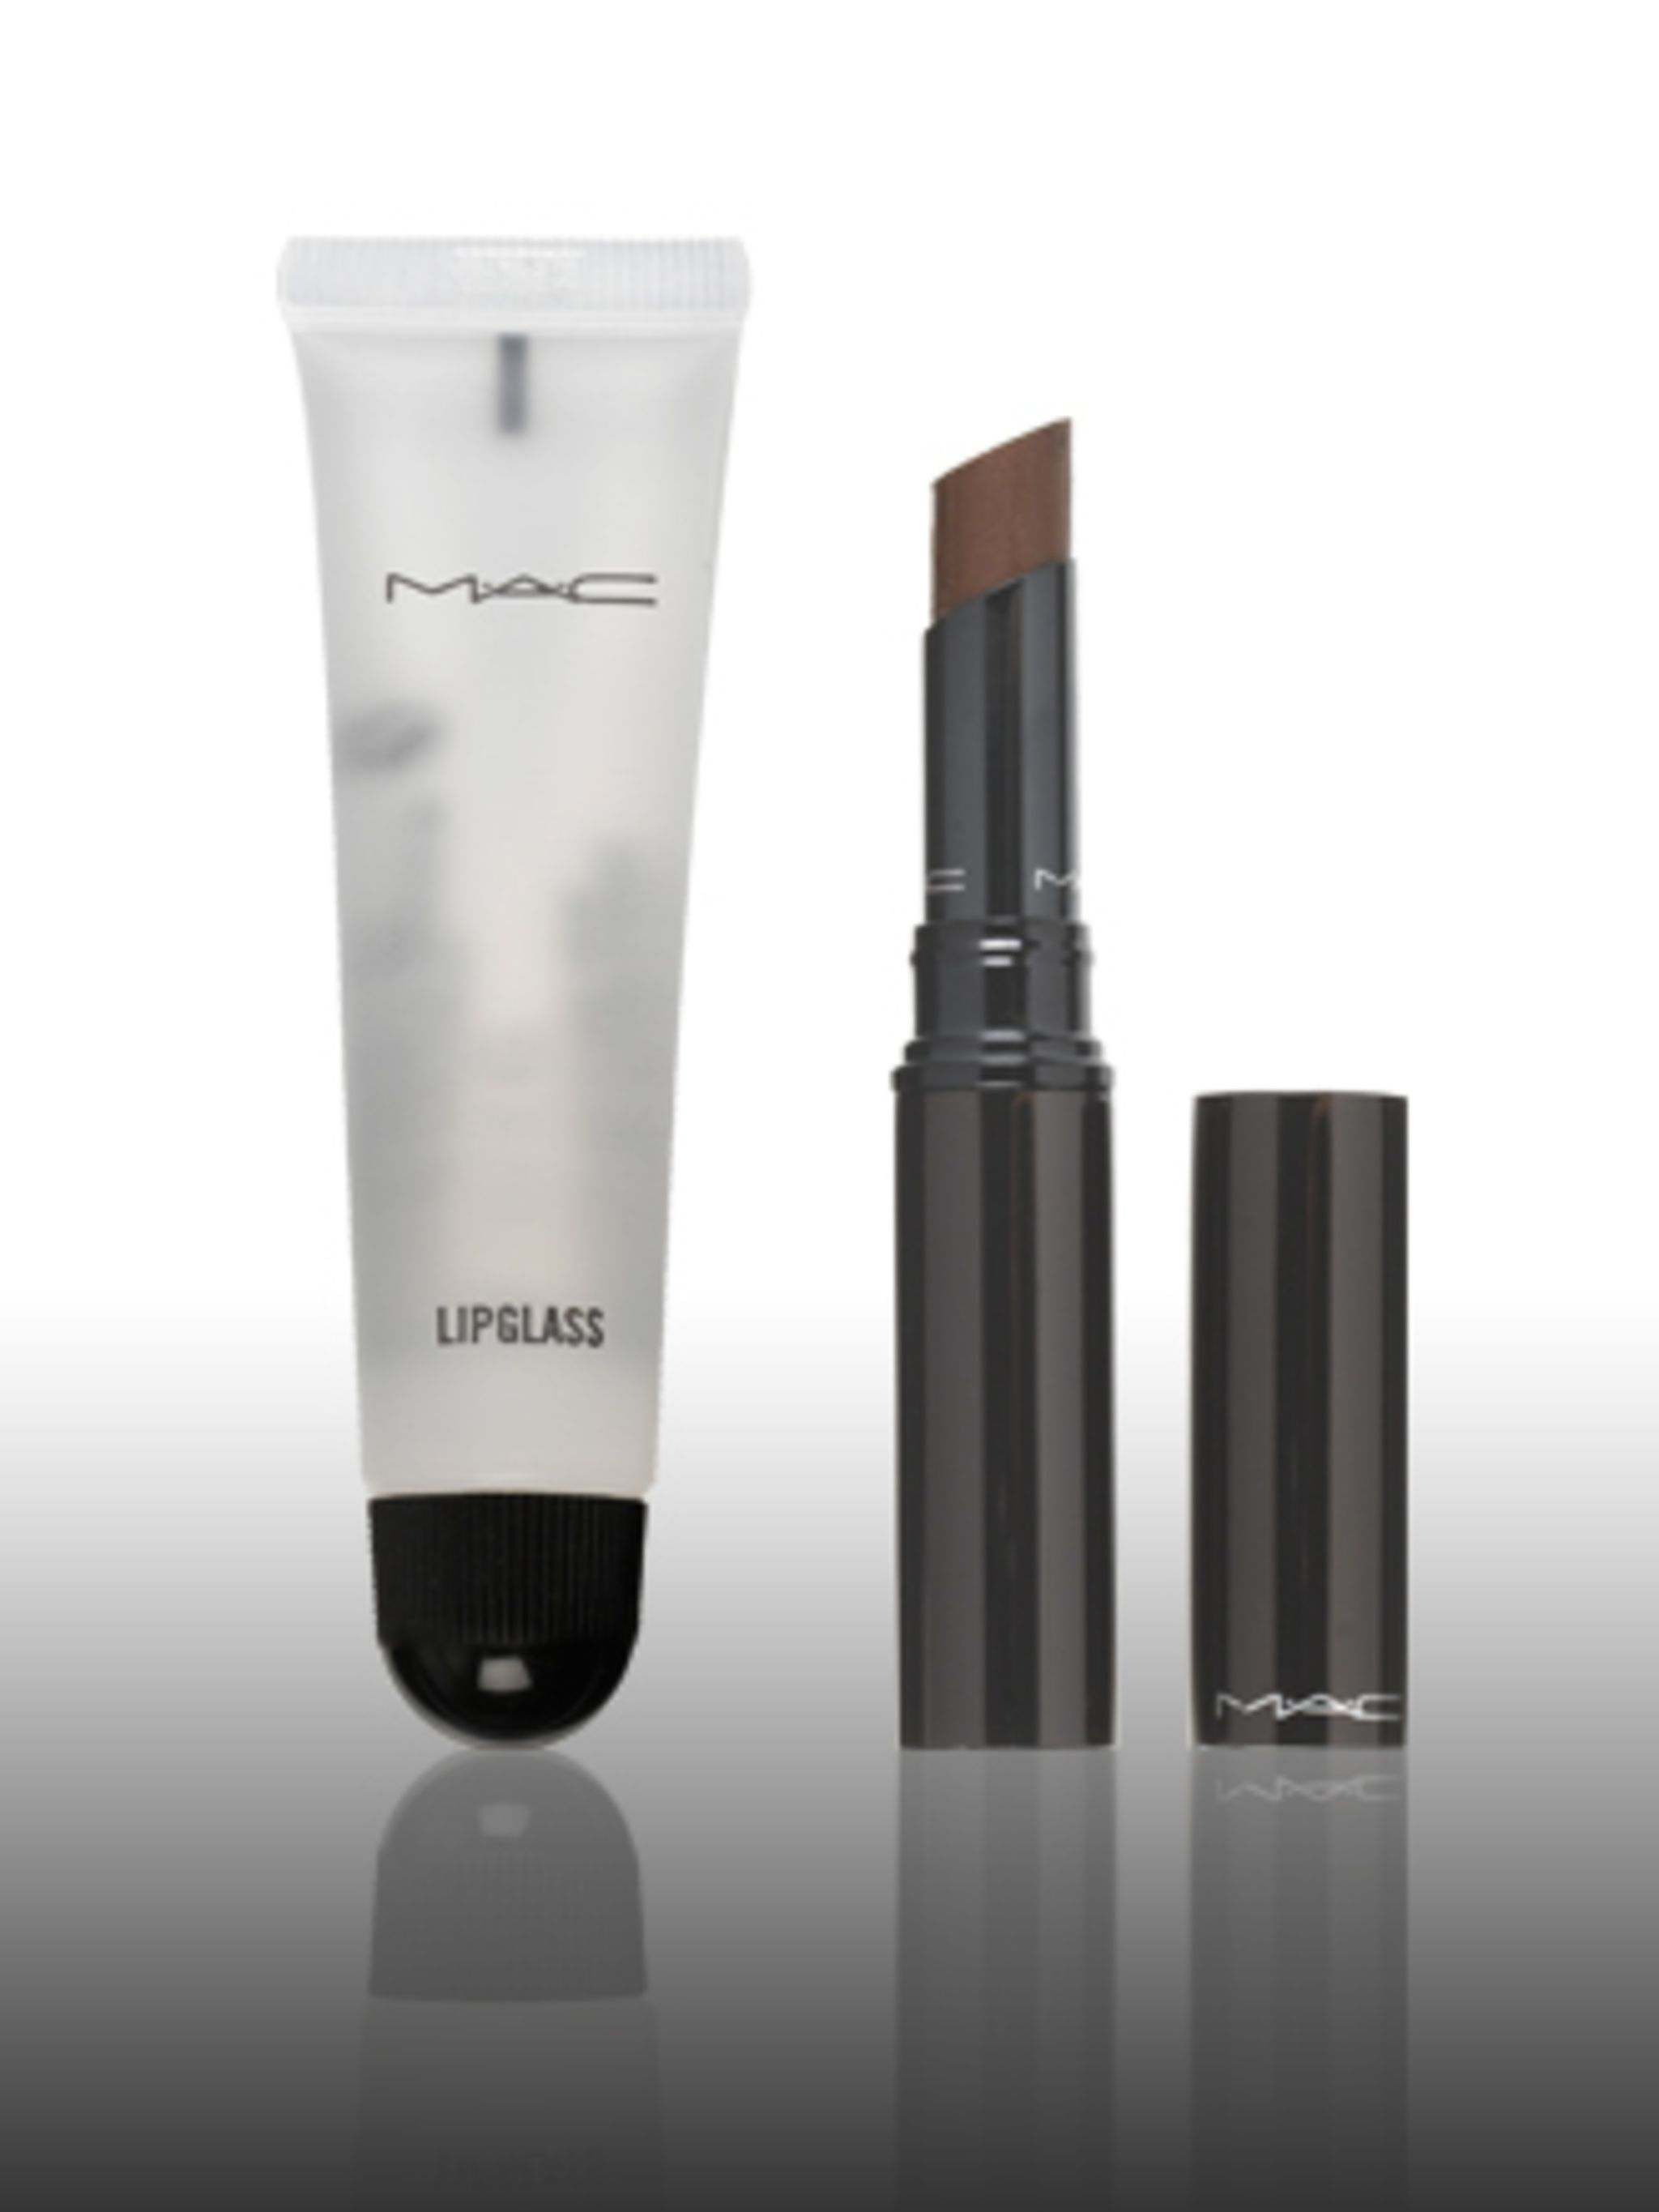 "<p>Clear Lipglass, £9.50 and Mattene Lipstick in Chock-ful Blackened Brown, £11.50 by <a href=""http://www.maccosmetics.co.uk/templates/products/category.tmpl?CATEGORY_ID=CAT3726"">Mac</a> </p><p><a href=""http://www.elleuk.com/beauty/beauty-trends/berry-lip"